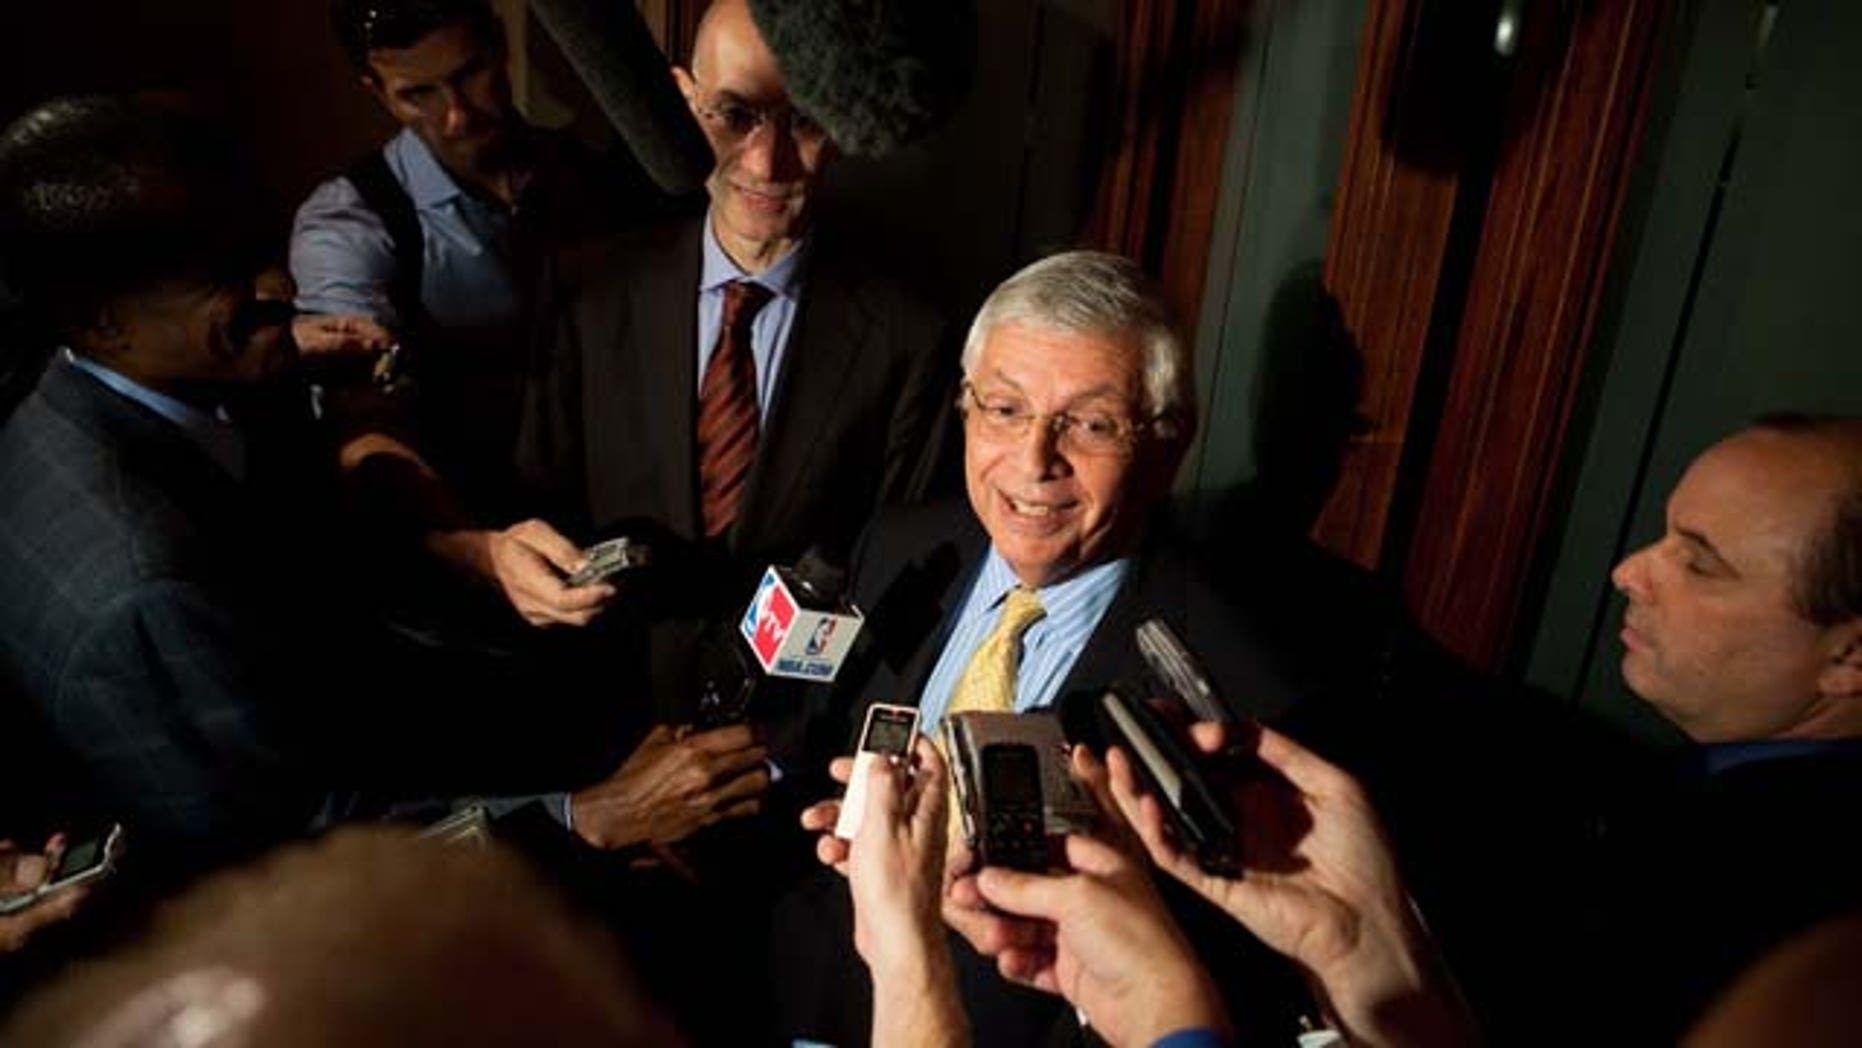 NBA Commissioner David Stern, center, speaks to reporters after a meeting between the NBA Players Association and owners to discuss a new labor deal and possibly avert a lockout, Friday, Sept. 30, 2011, in New York. (AP Photo/John Minchillo)